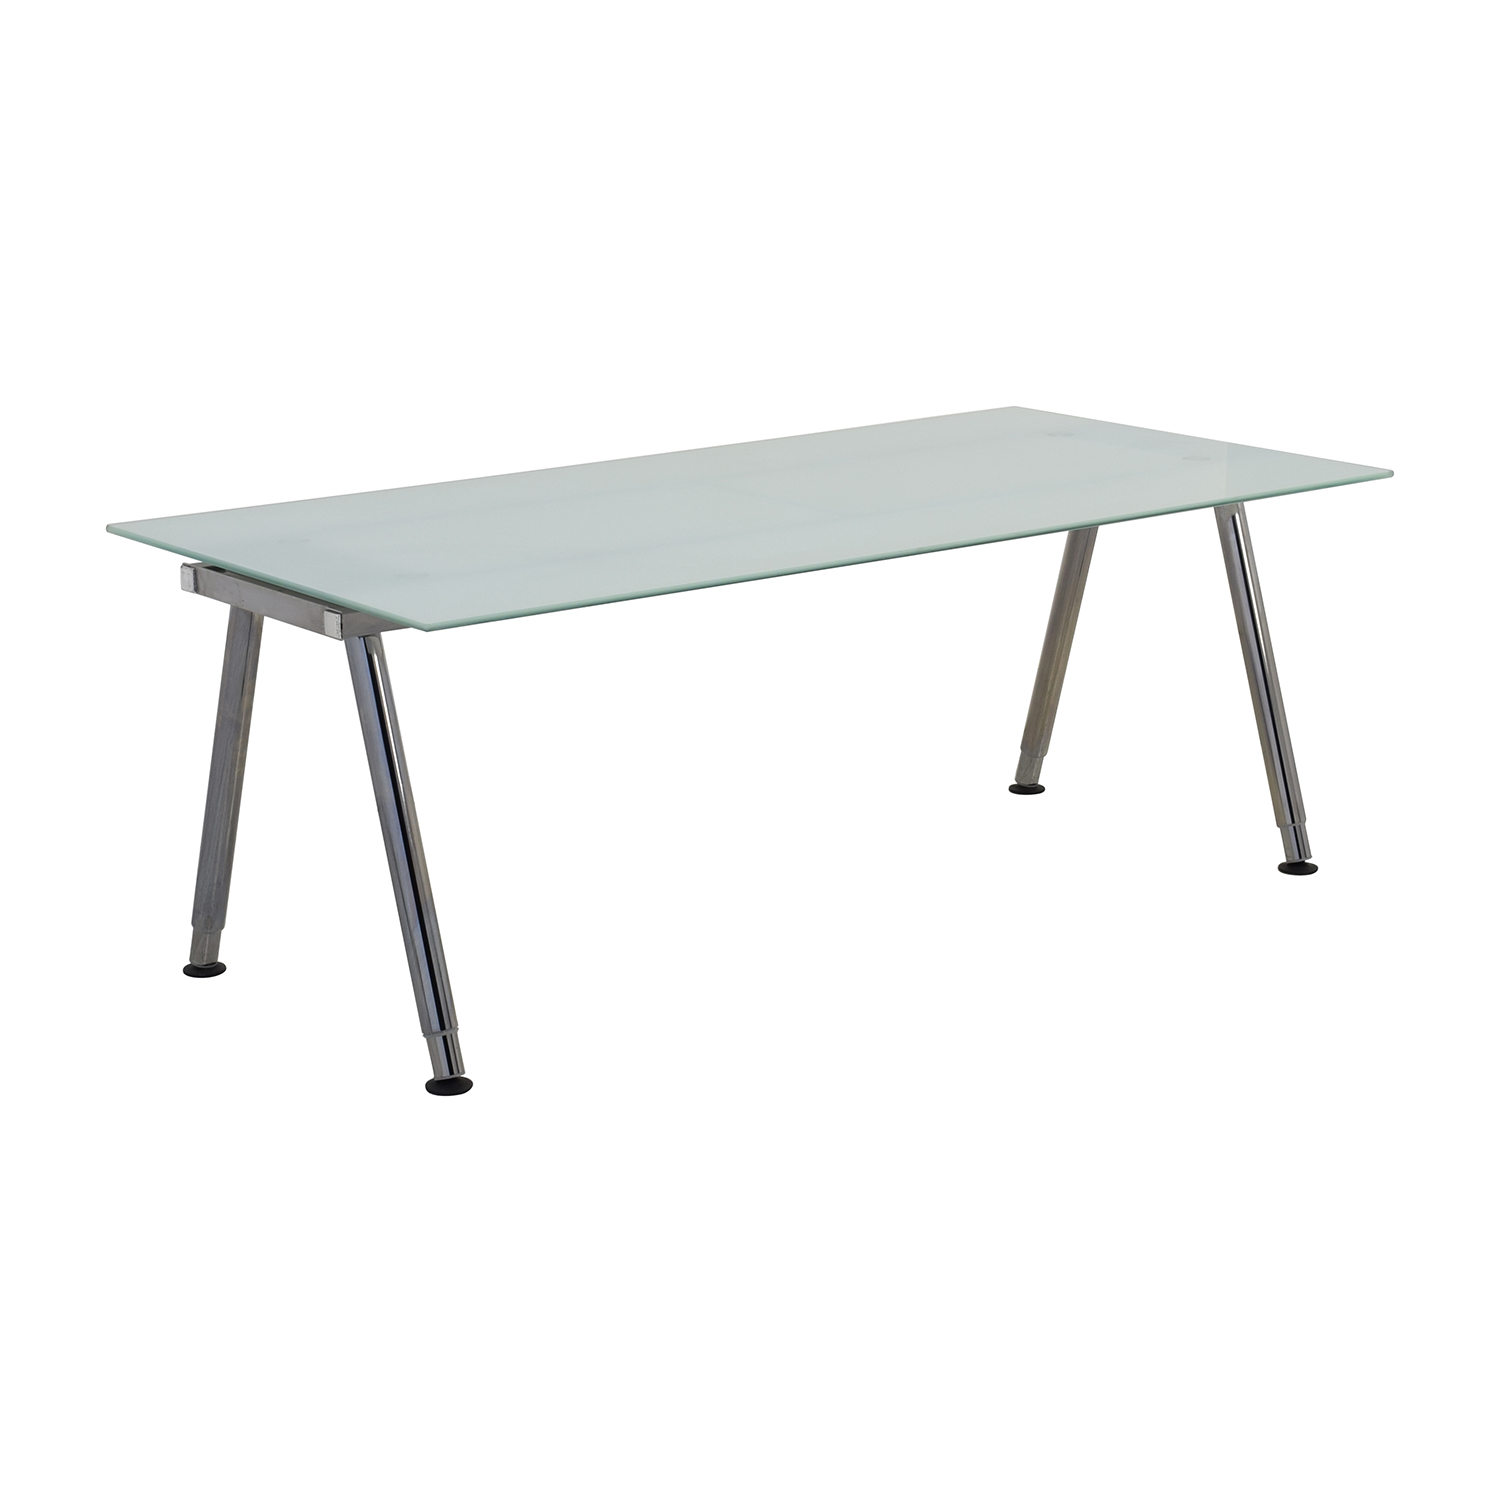 69 off ikea ikea galant glass top desk tables for Ikea glass table tops